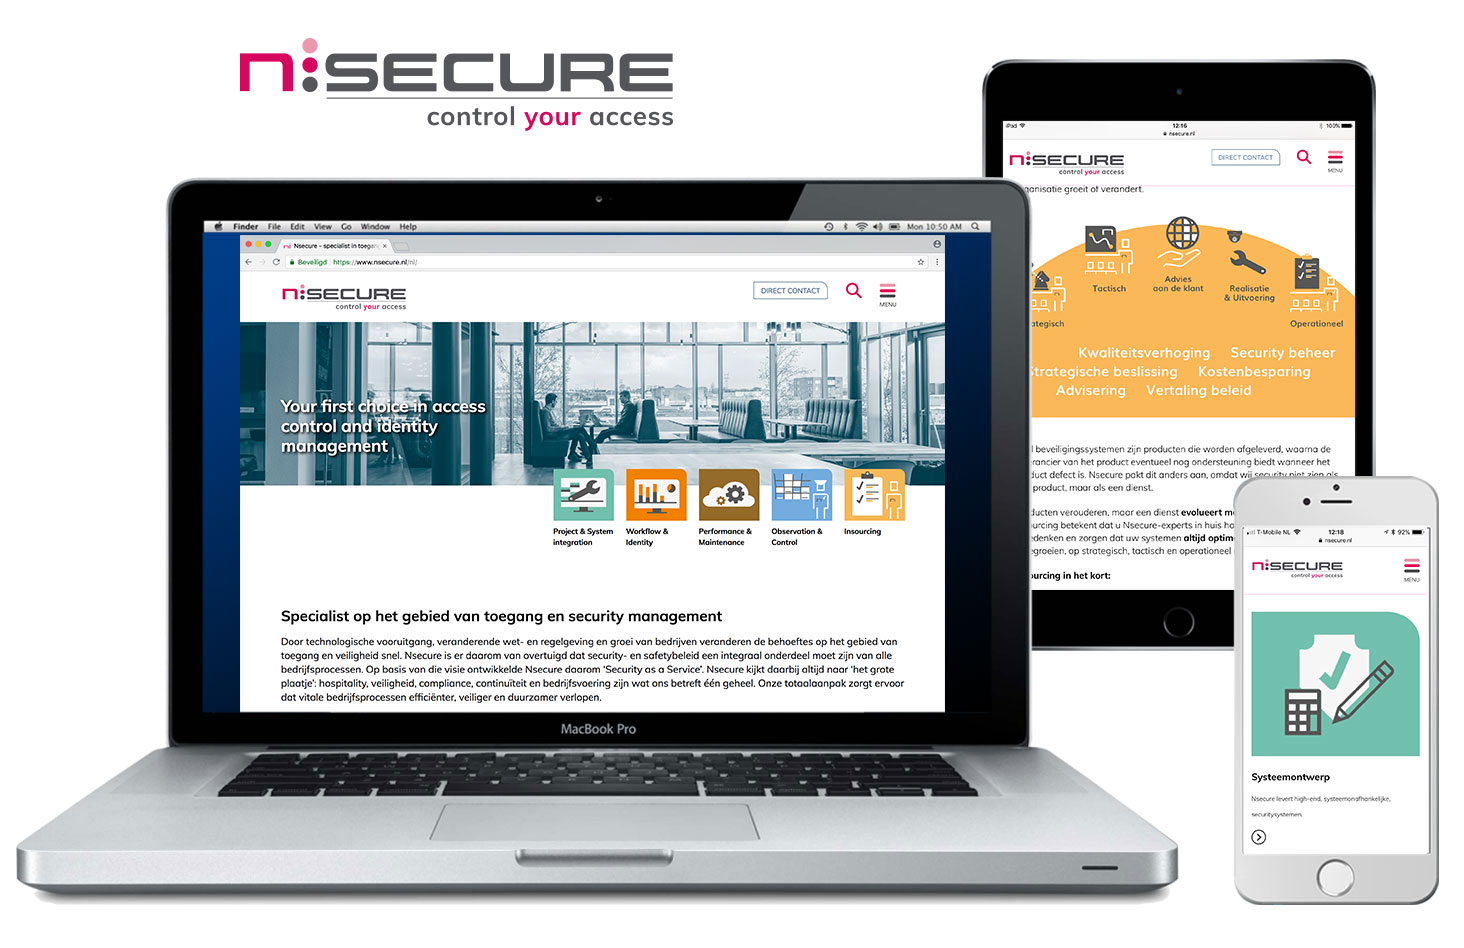 nsecure-website-macbook-ipad-iphone